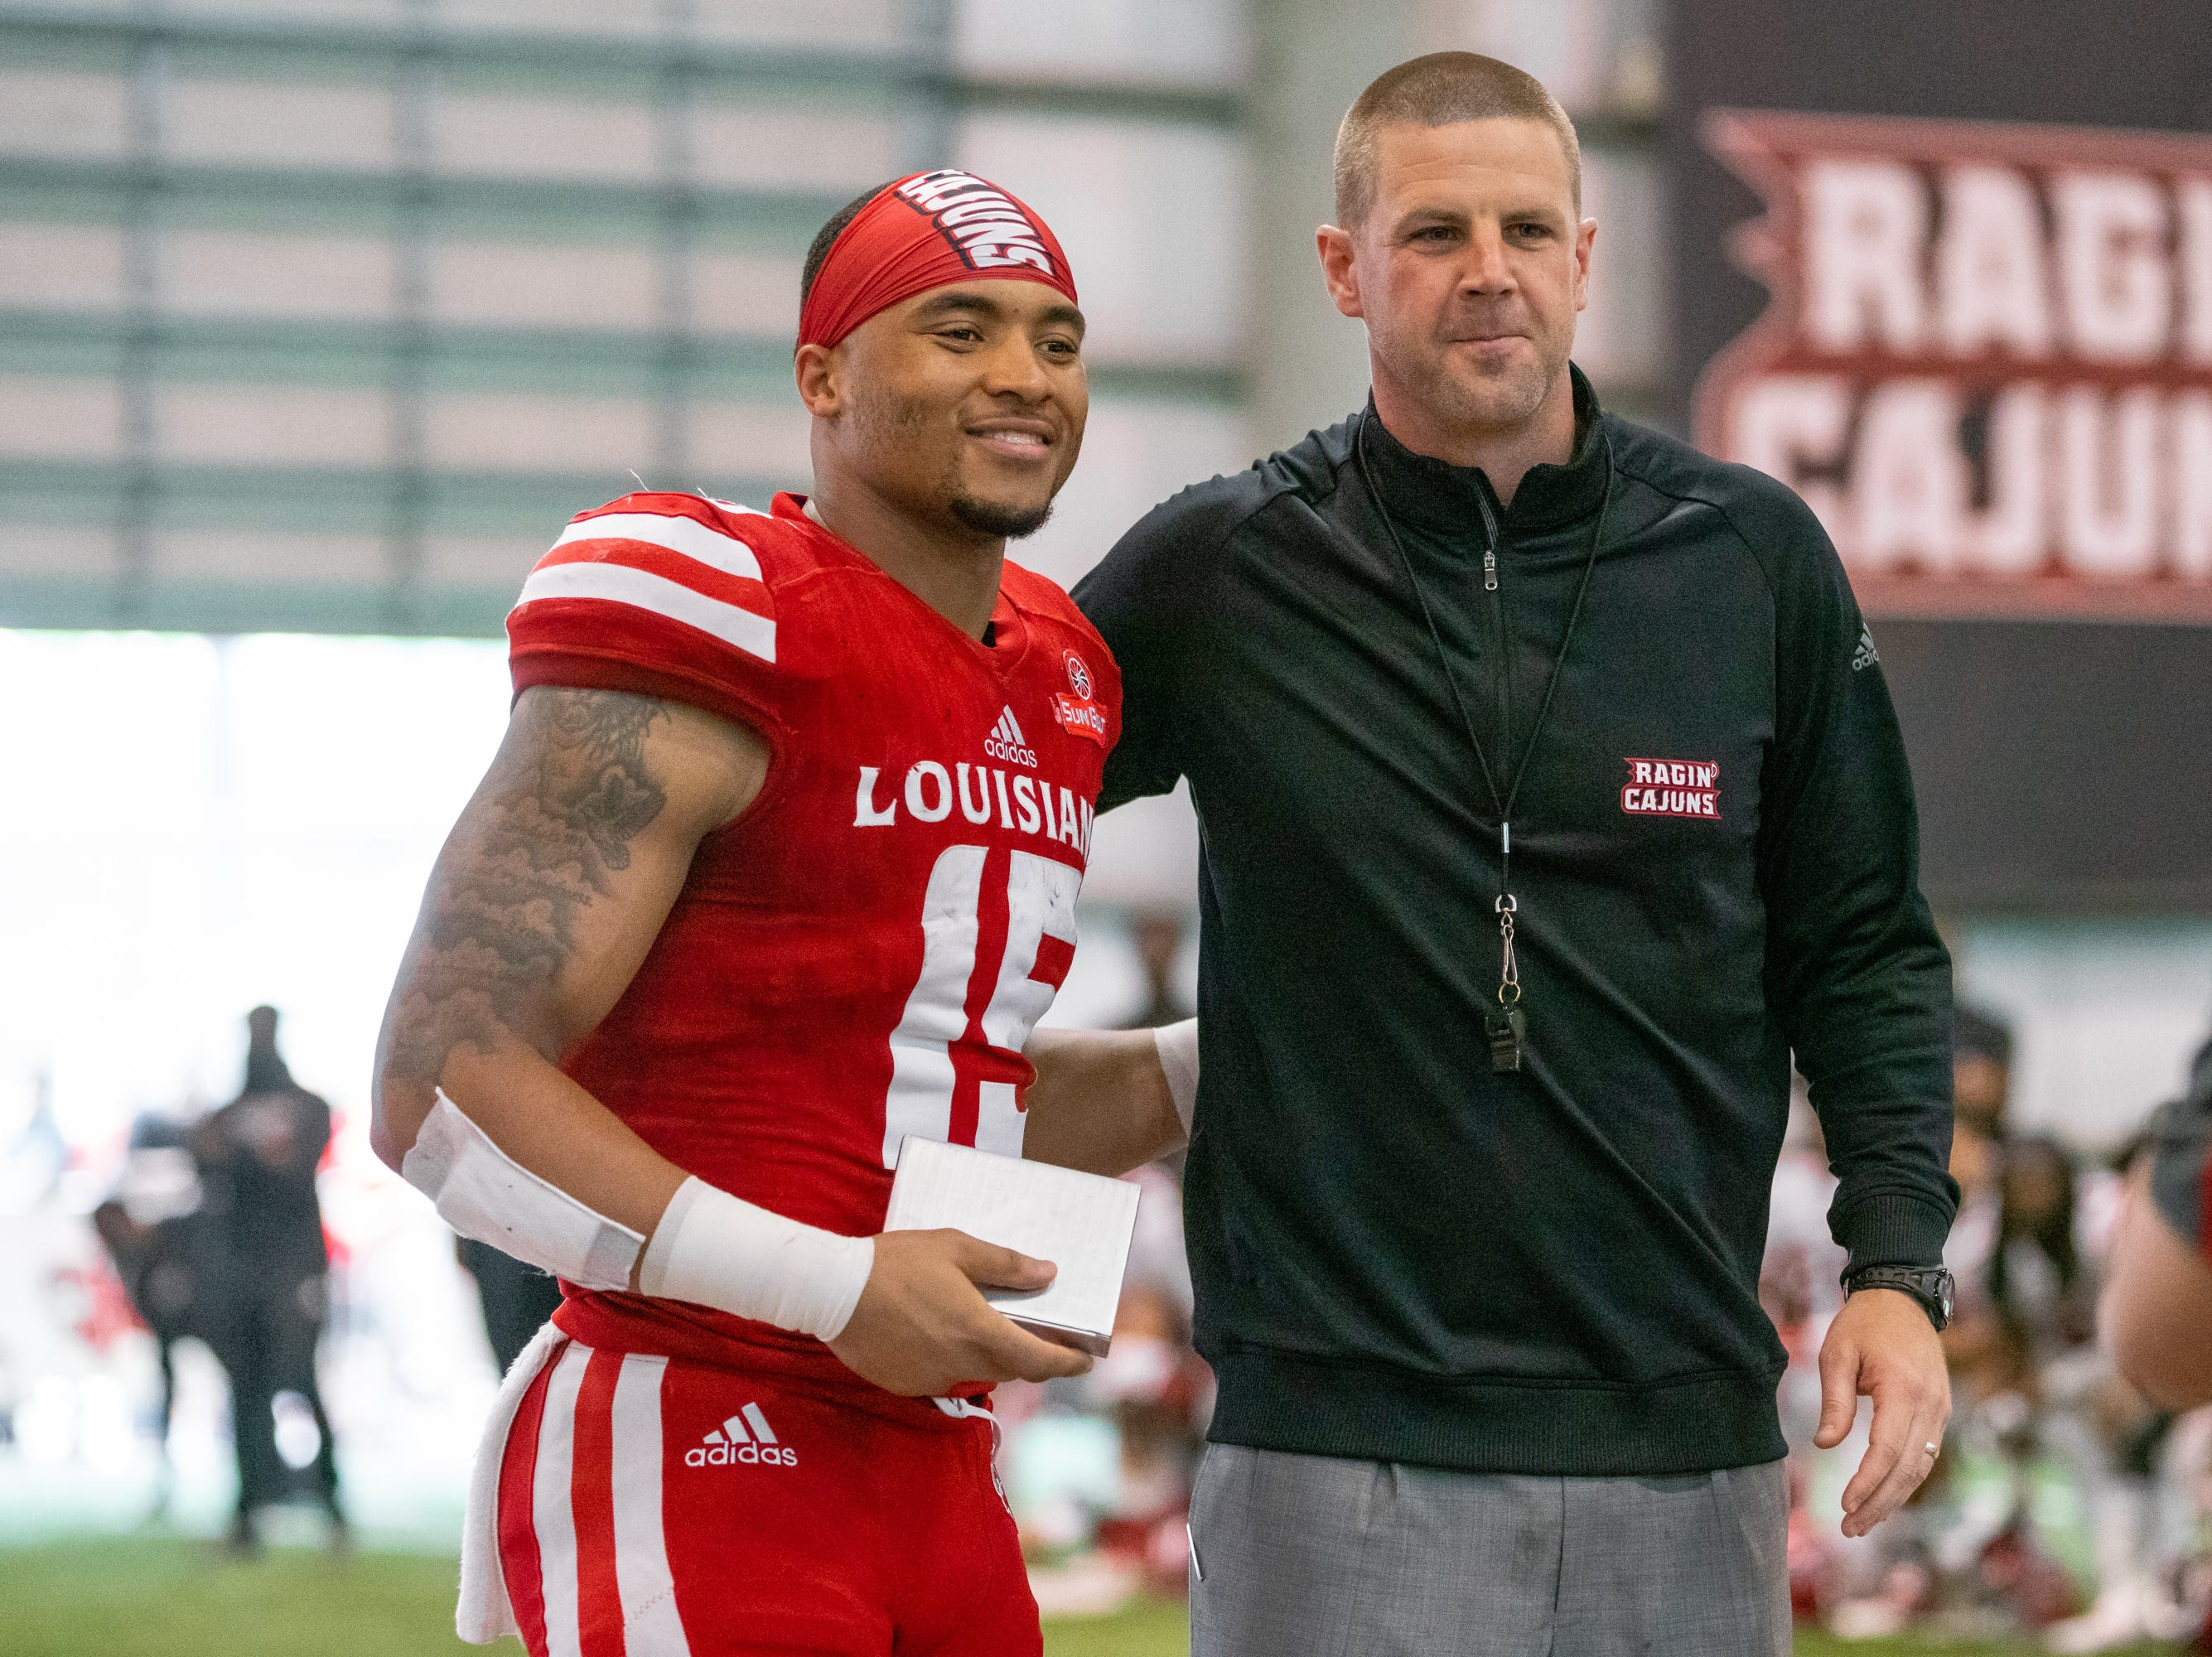 UL's head coach Billy Napier poses with Elijah Mitchell during halftime as the Ragin' Cajuns football team plays their annual Spring football game against one another in the Leon Moncla trainig facility on April 13, 2019.